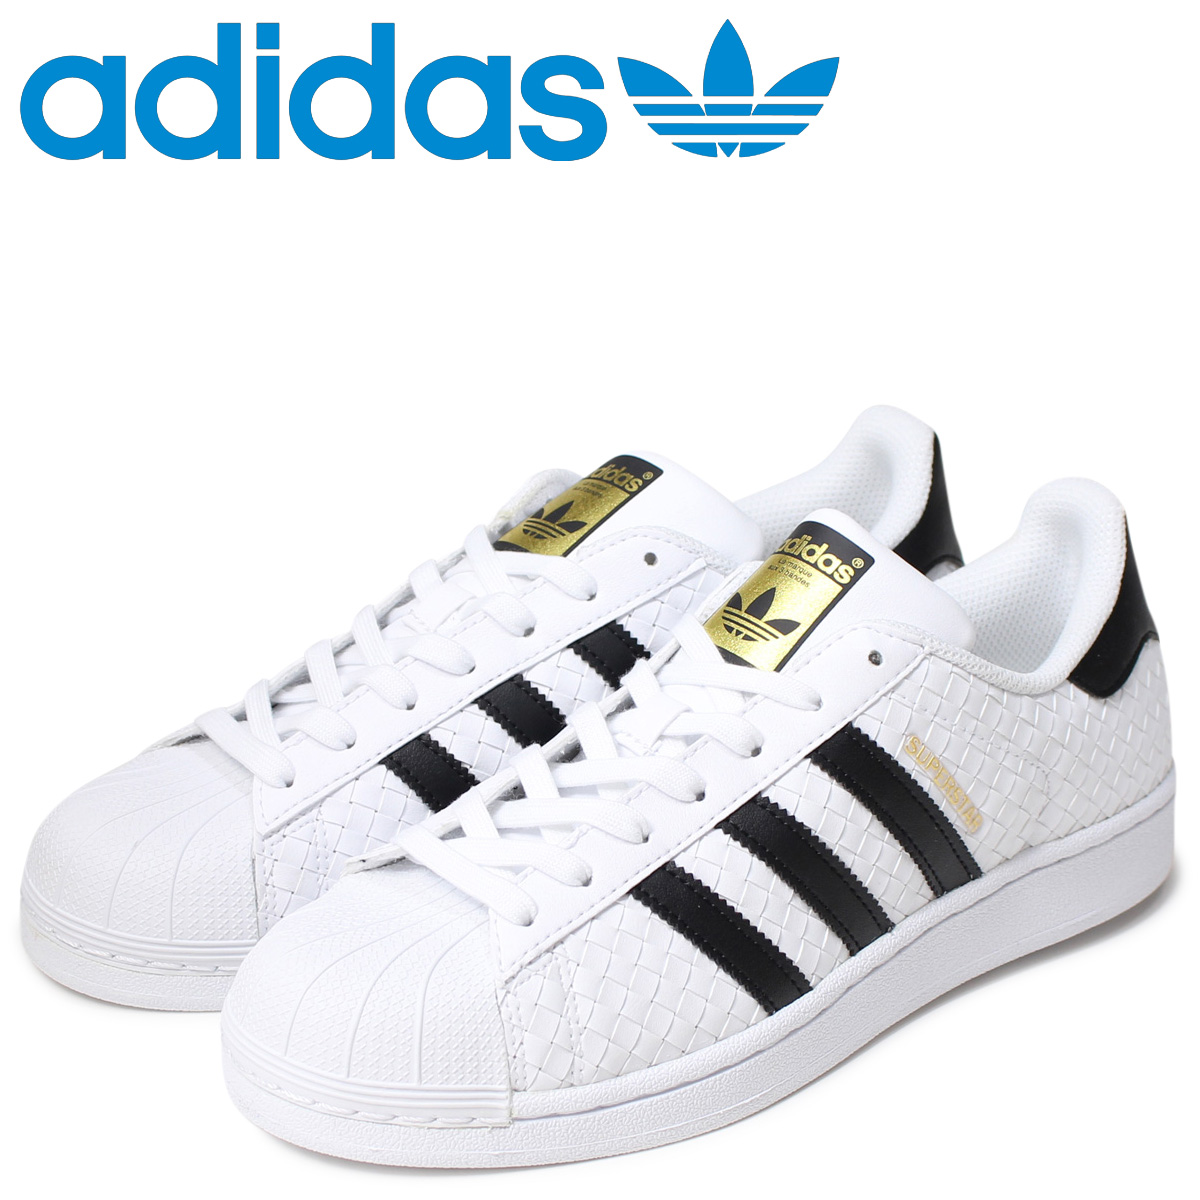 bbfdb22d It is a classic mark proud of the impact almost the face of the brand to,  and three lines symbolizing Adidas are adopted to a masterpiece